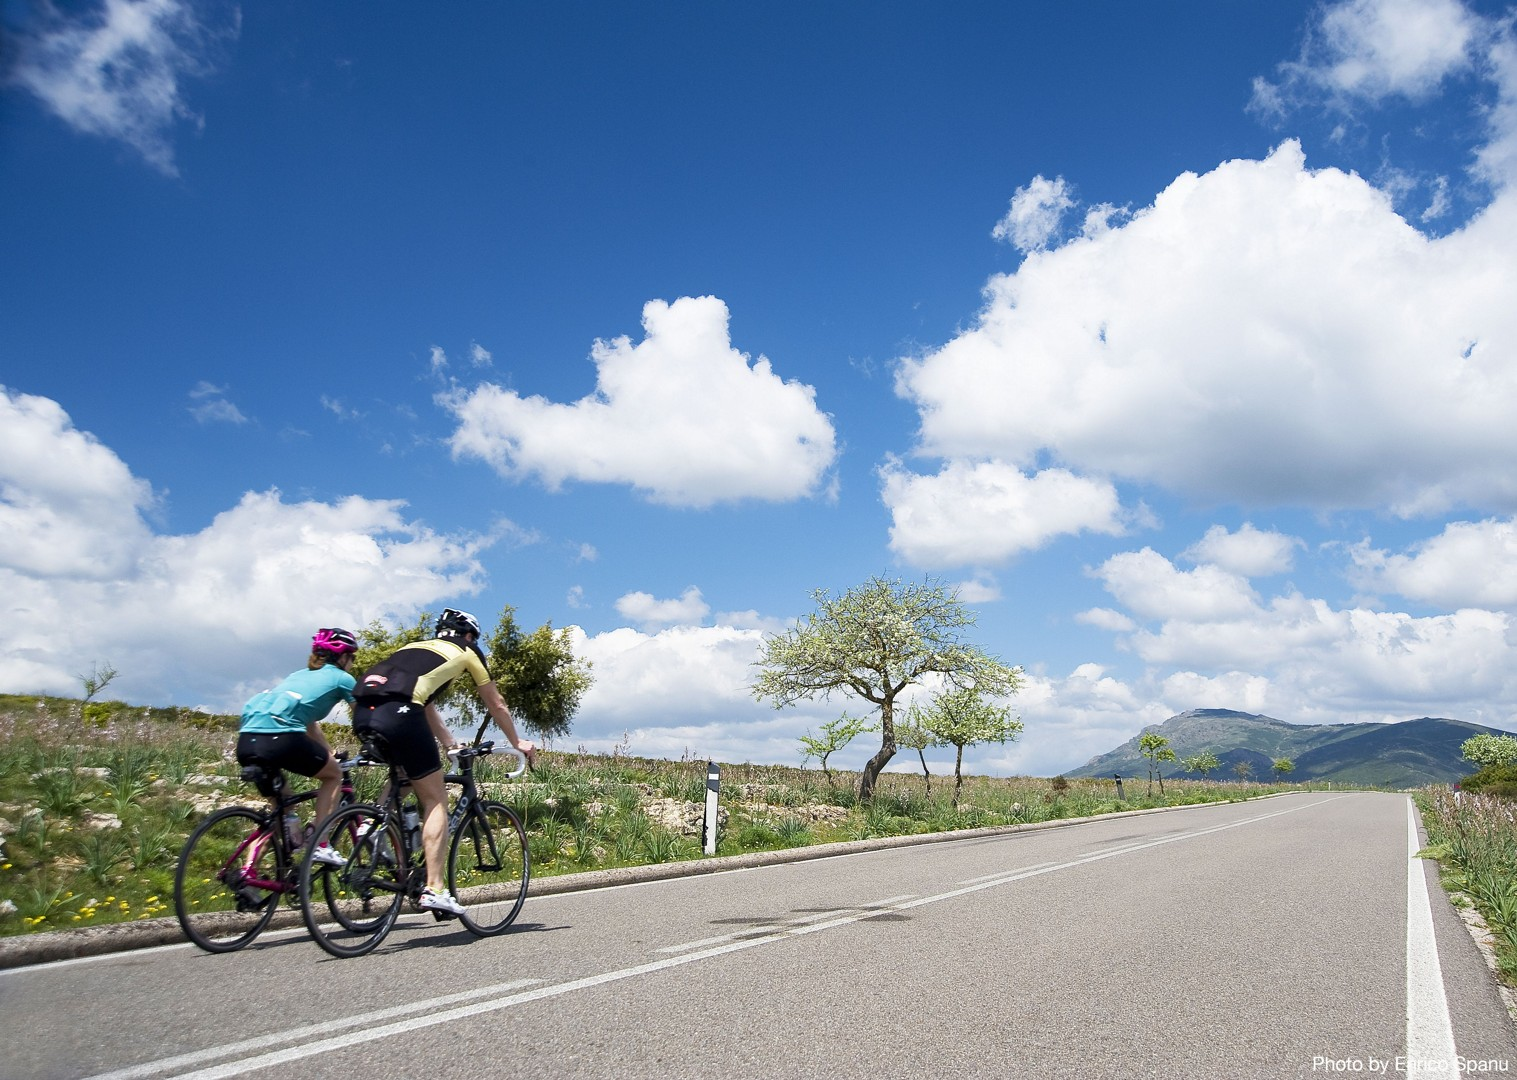 Road-Cycling-Holiday-Italy-Sardinia-Sardinian-Mountains-Flumendosa-Valley.jpg - Italy - Sardinia - Mountain Explorer - Guided Road Cycling Holiday - Road Cycling